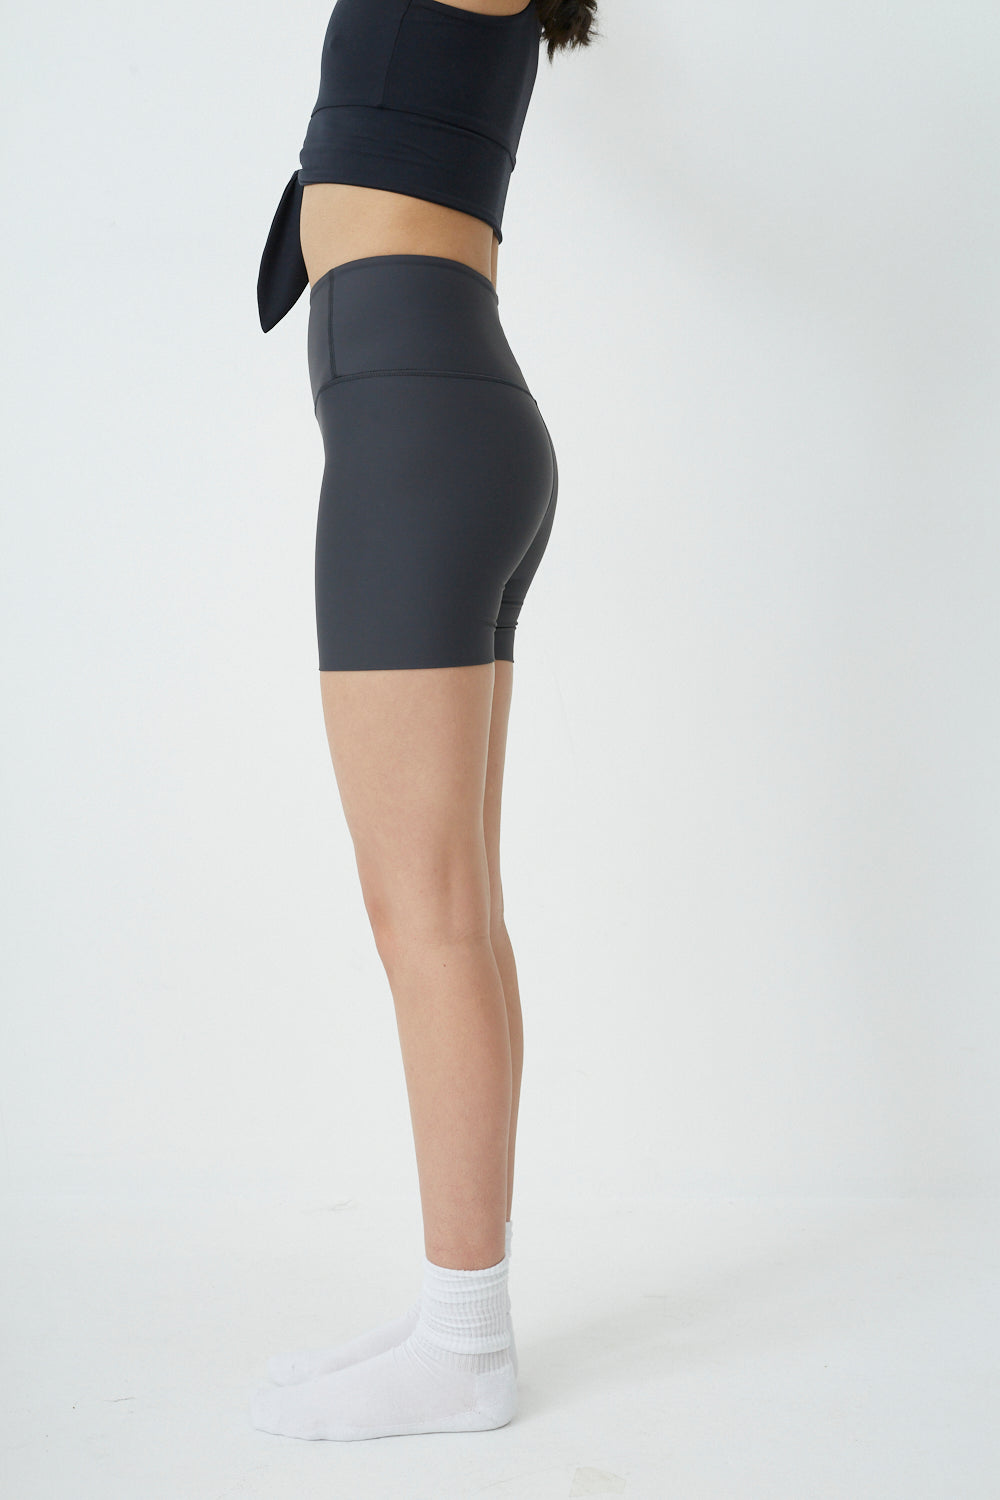 High Waist Seamless Shorts in Charcoal - PRE ORDER